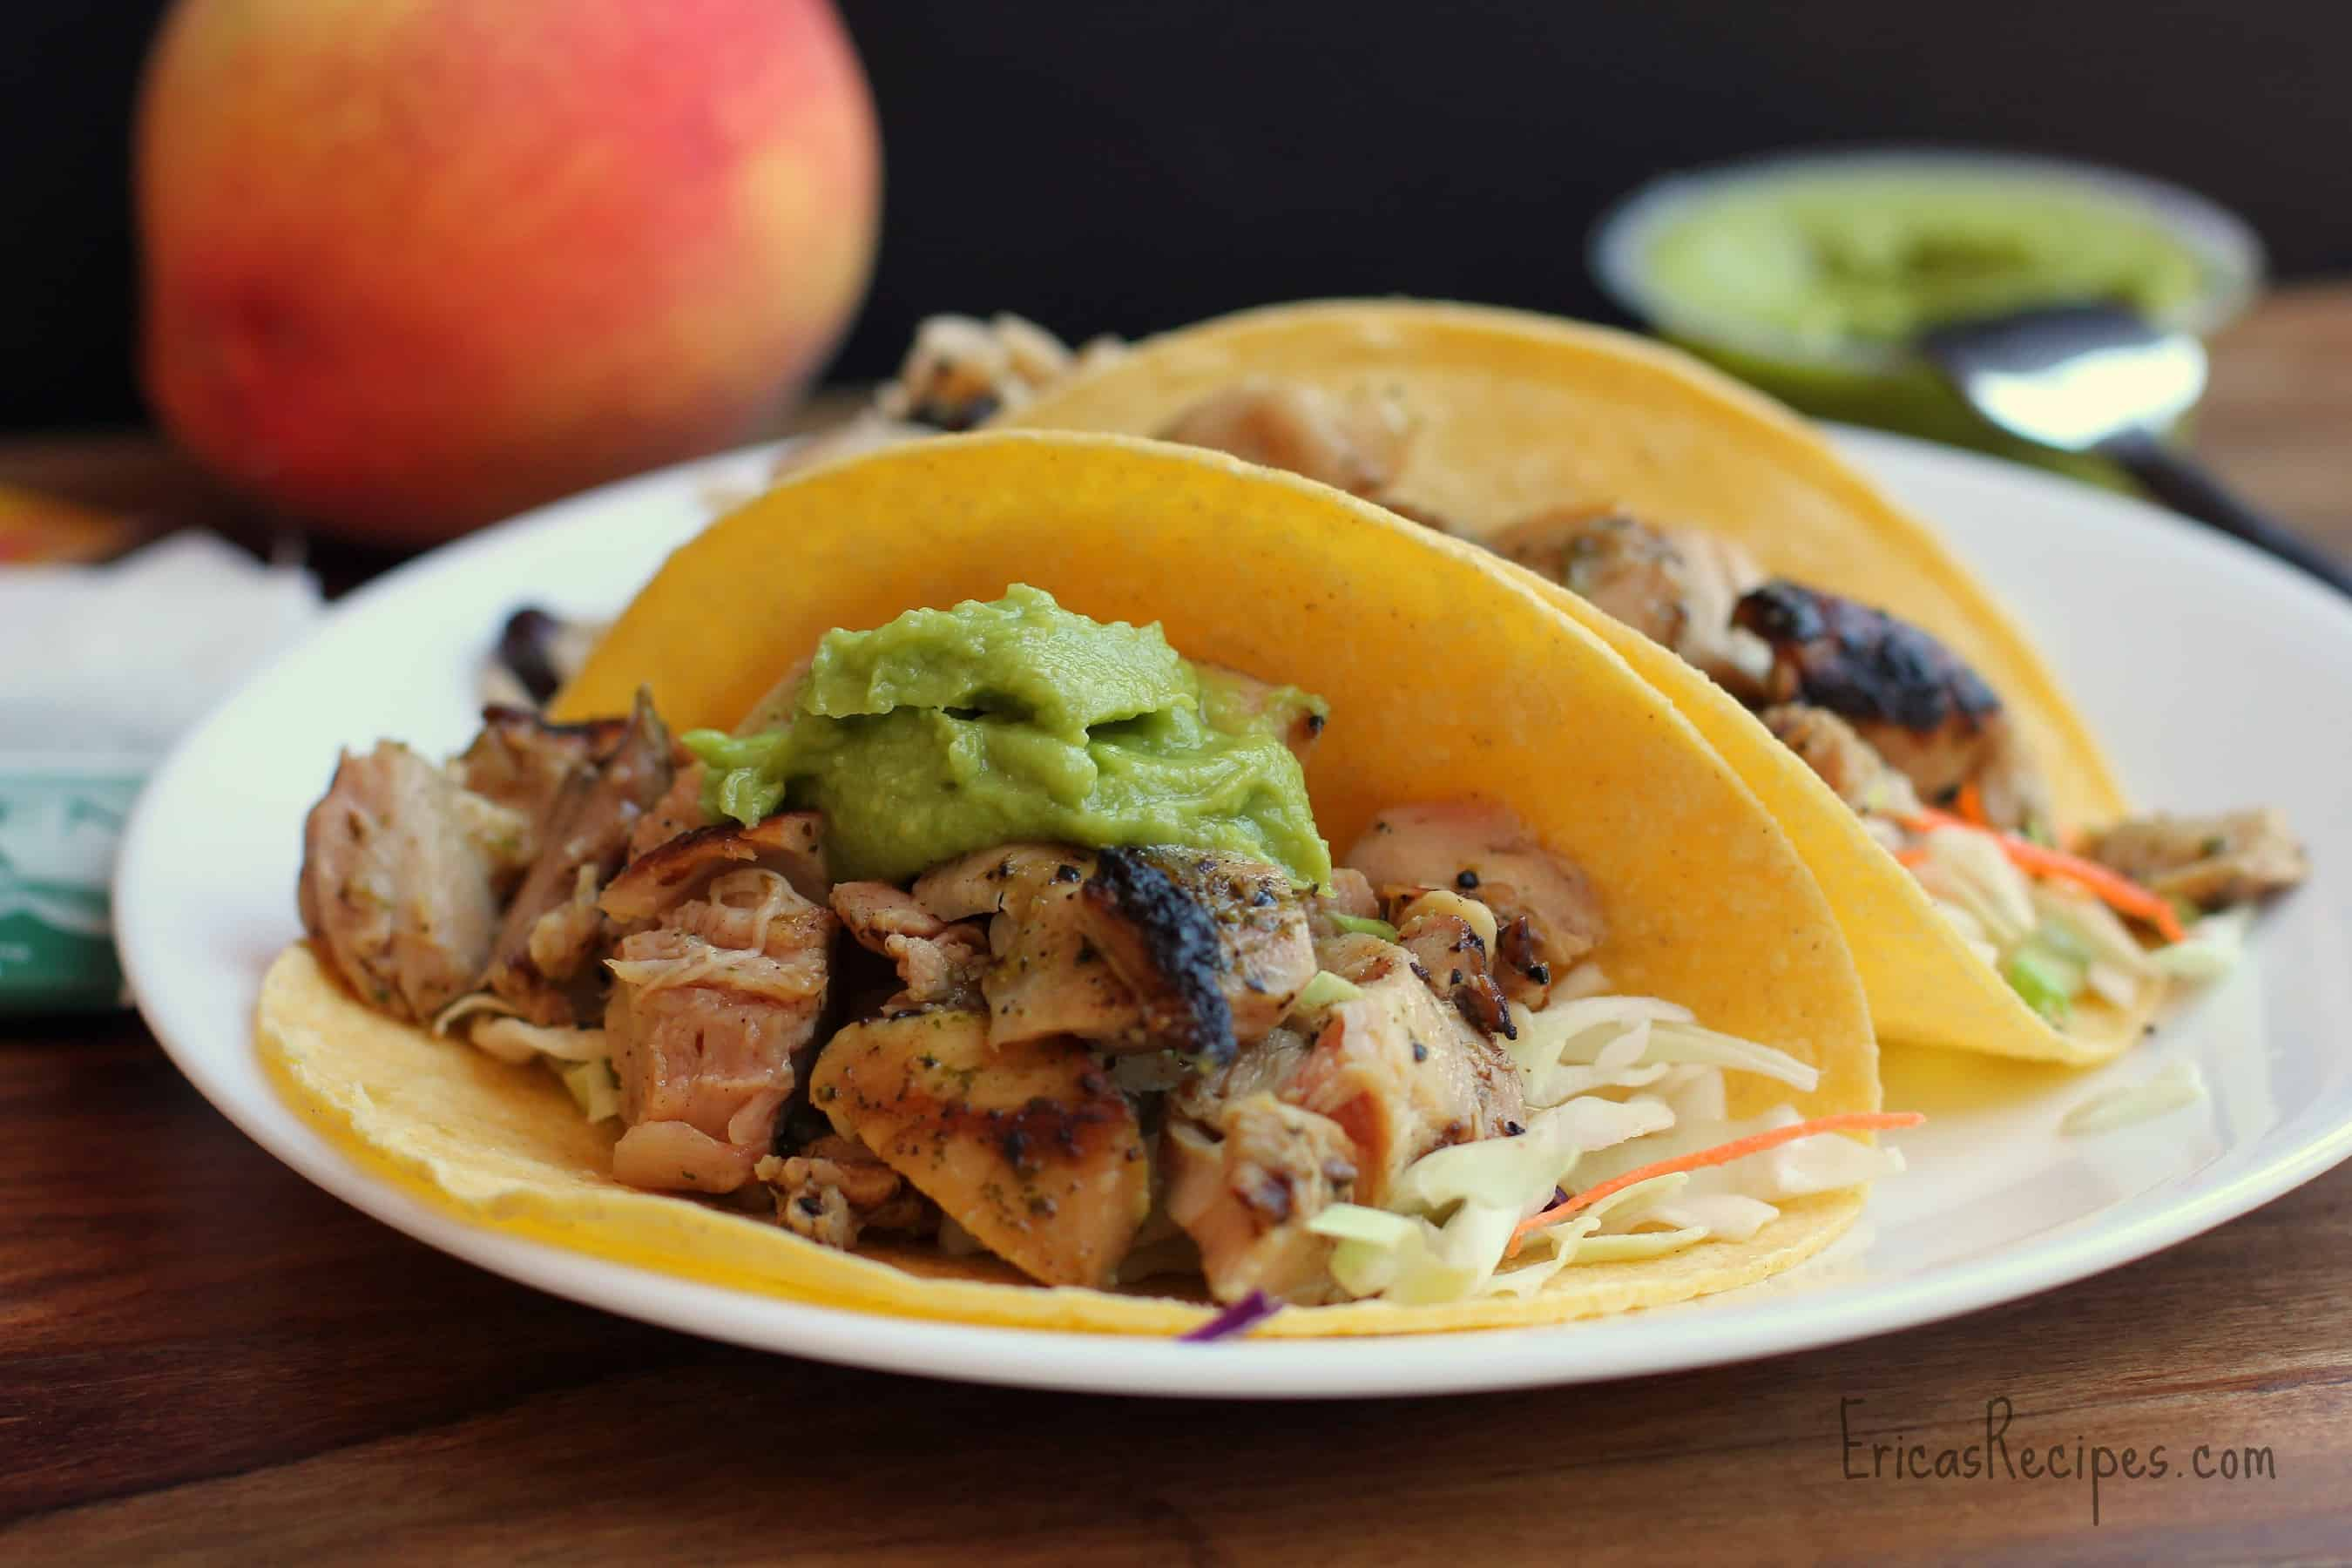 Healthy Week: Lunches 8 {Orange and Cilantro-Marinated Chicken Tacos}